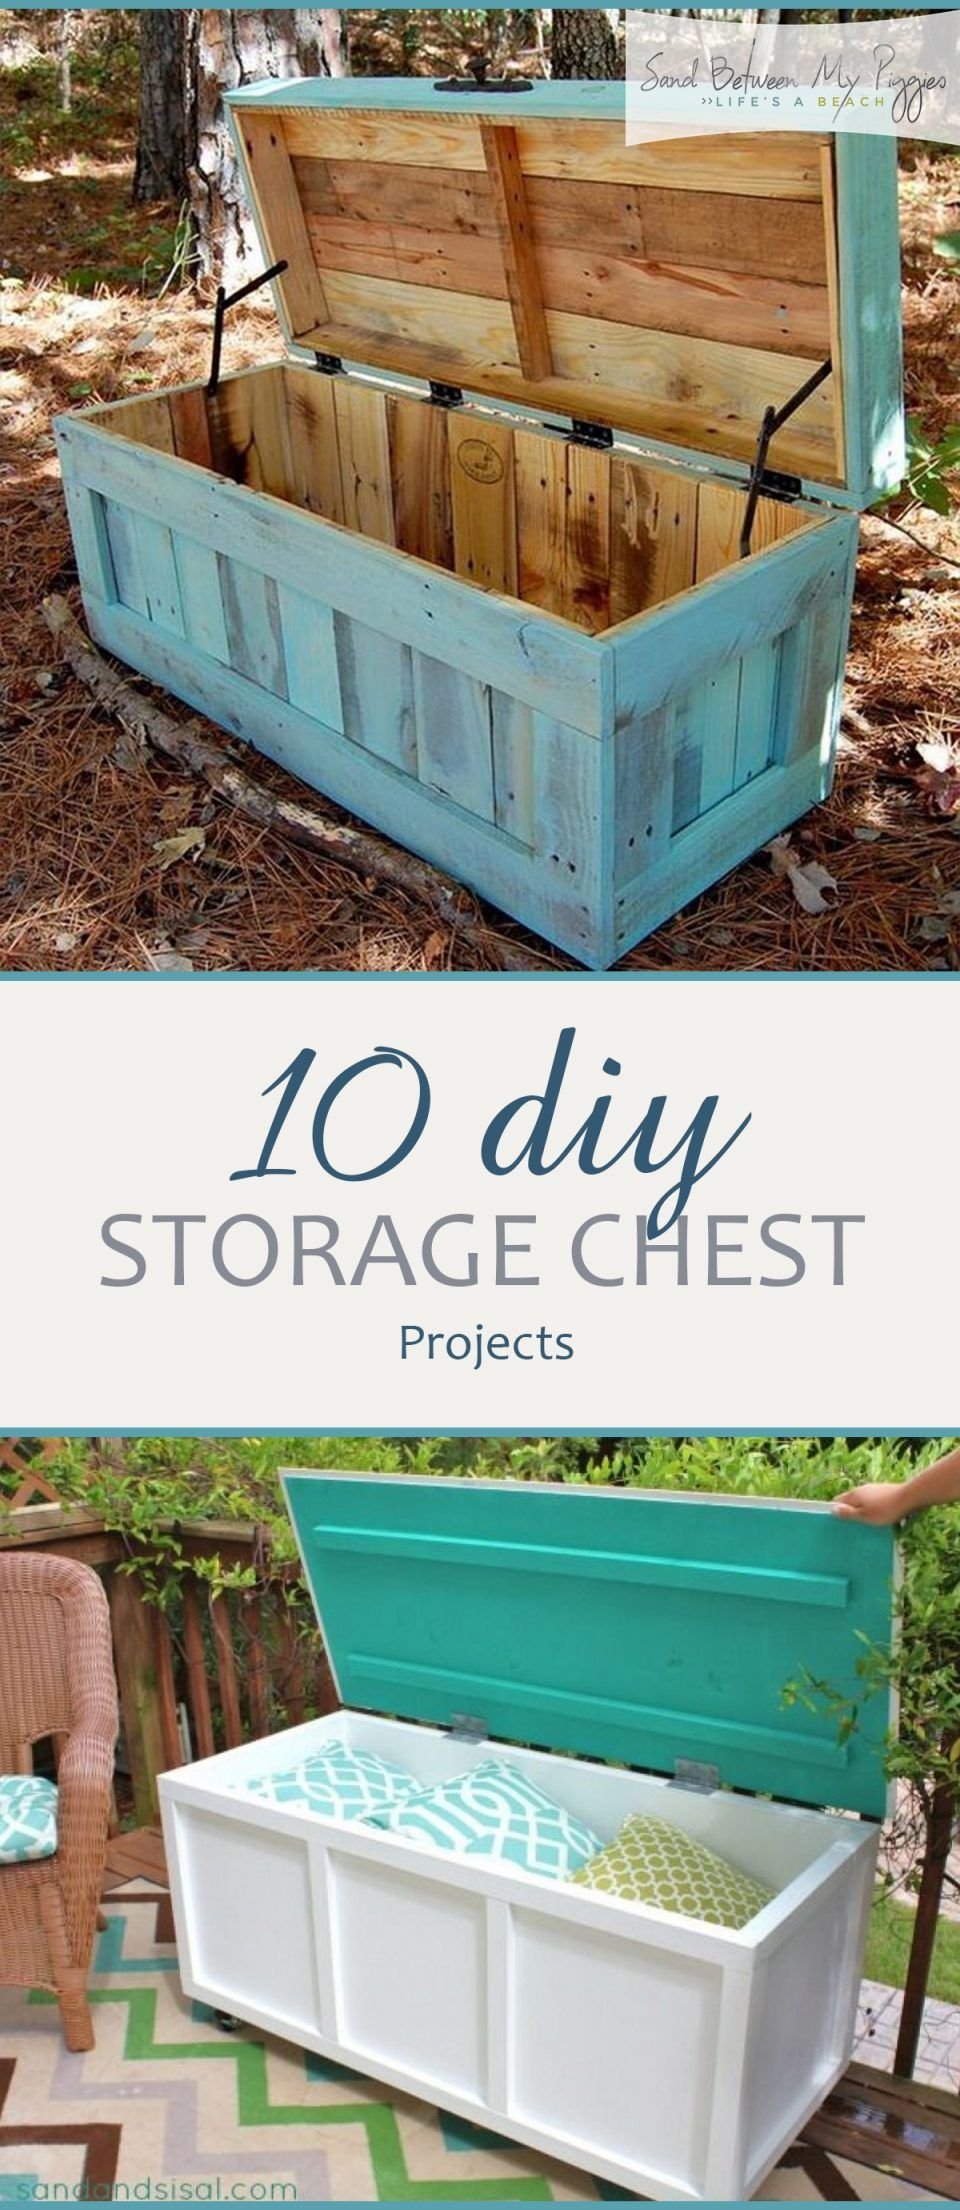 Photo of 10 DIY Storage Chest Projects | Sand Between My Piggies